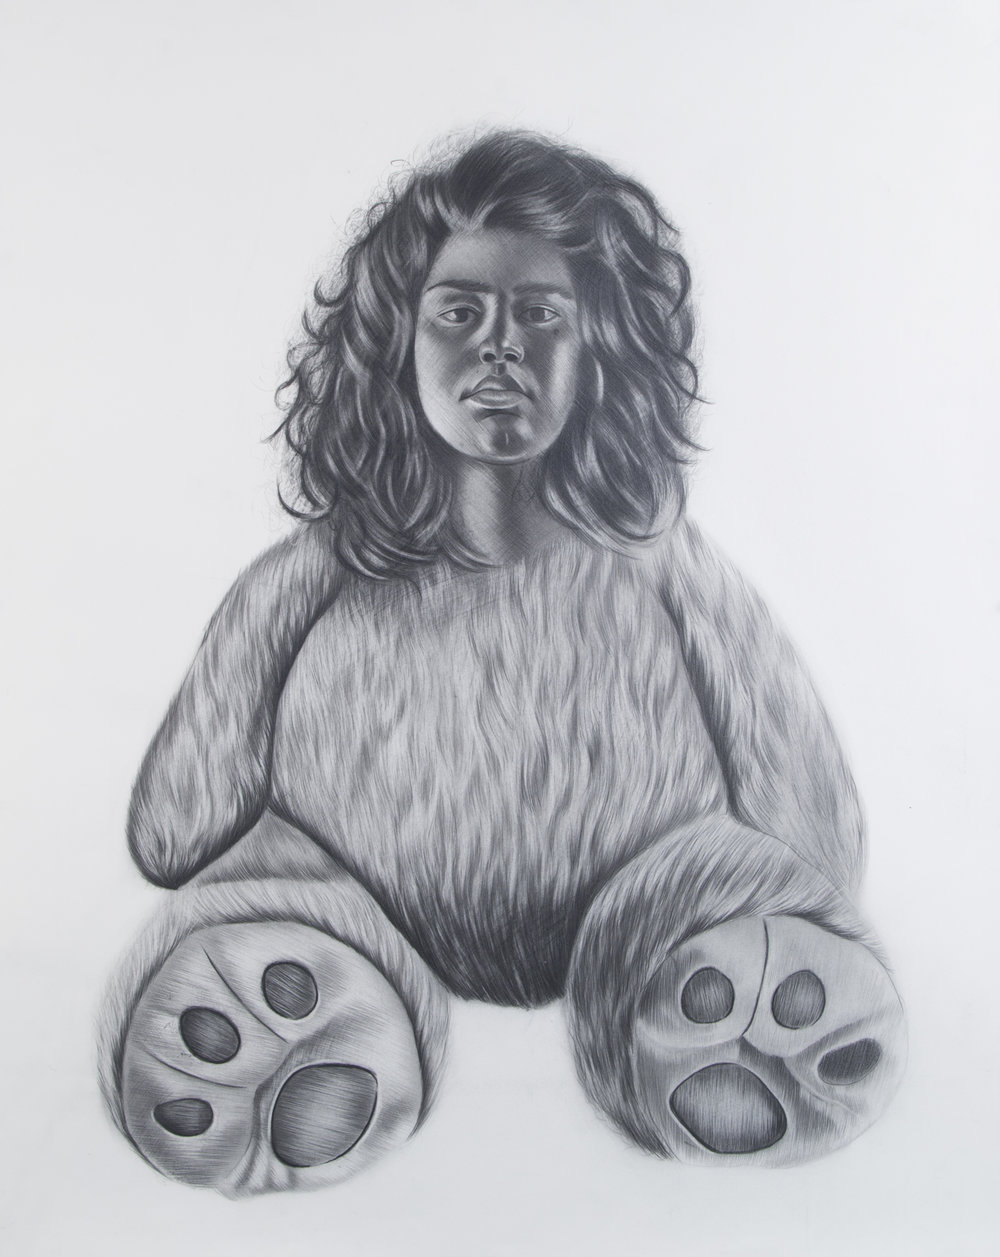 Criatura #1, 22 x 30 inches. Graphite on paper. 2018